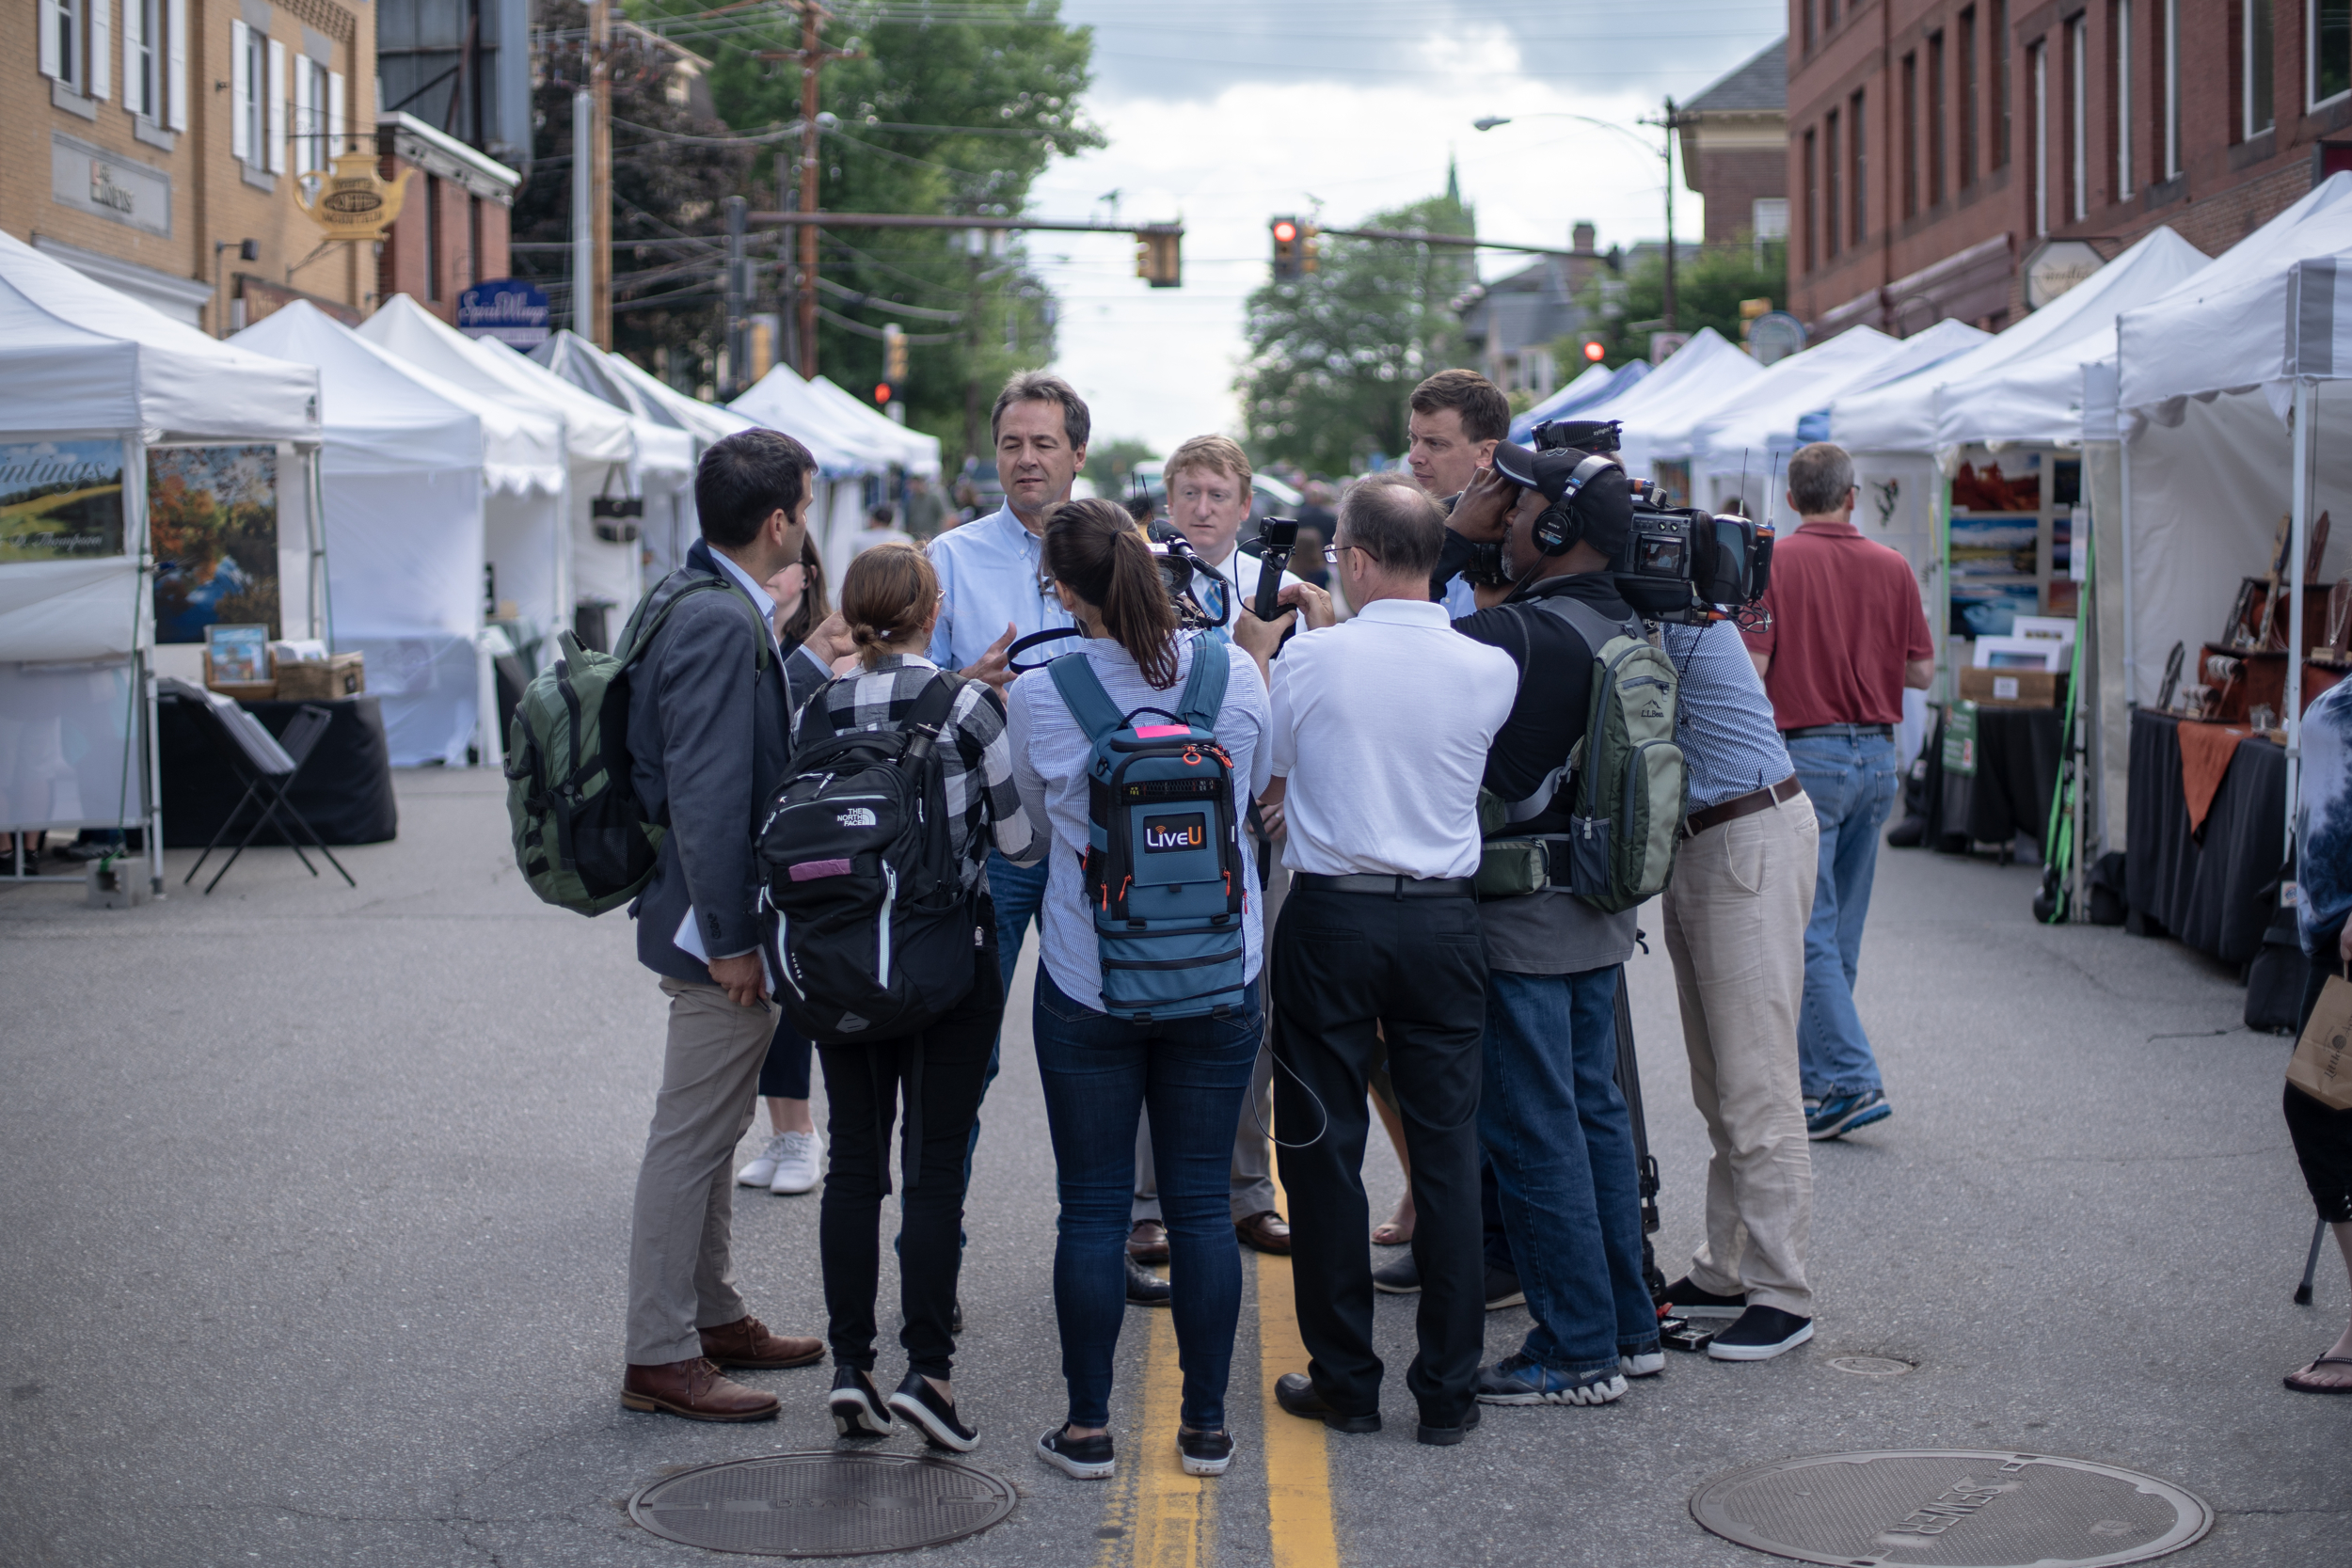 Gov. Steve Bullock of Montana walked through Market Days in Concord, New Hampshire on Friday, June 21, 2019. The stop was one of several over two days during Bullock's first visit to the state as a presidential candidate. 